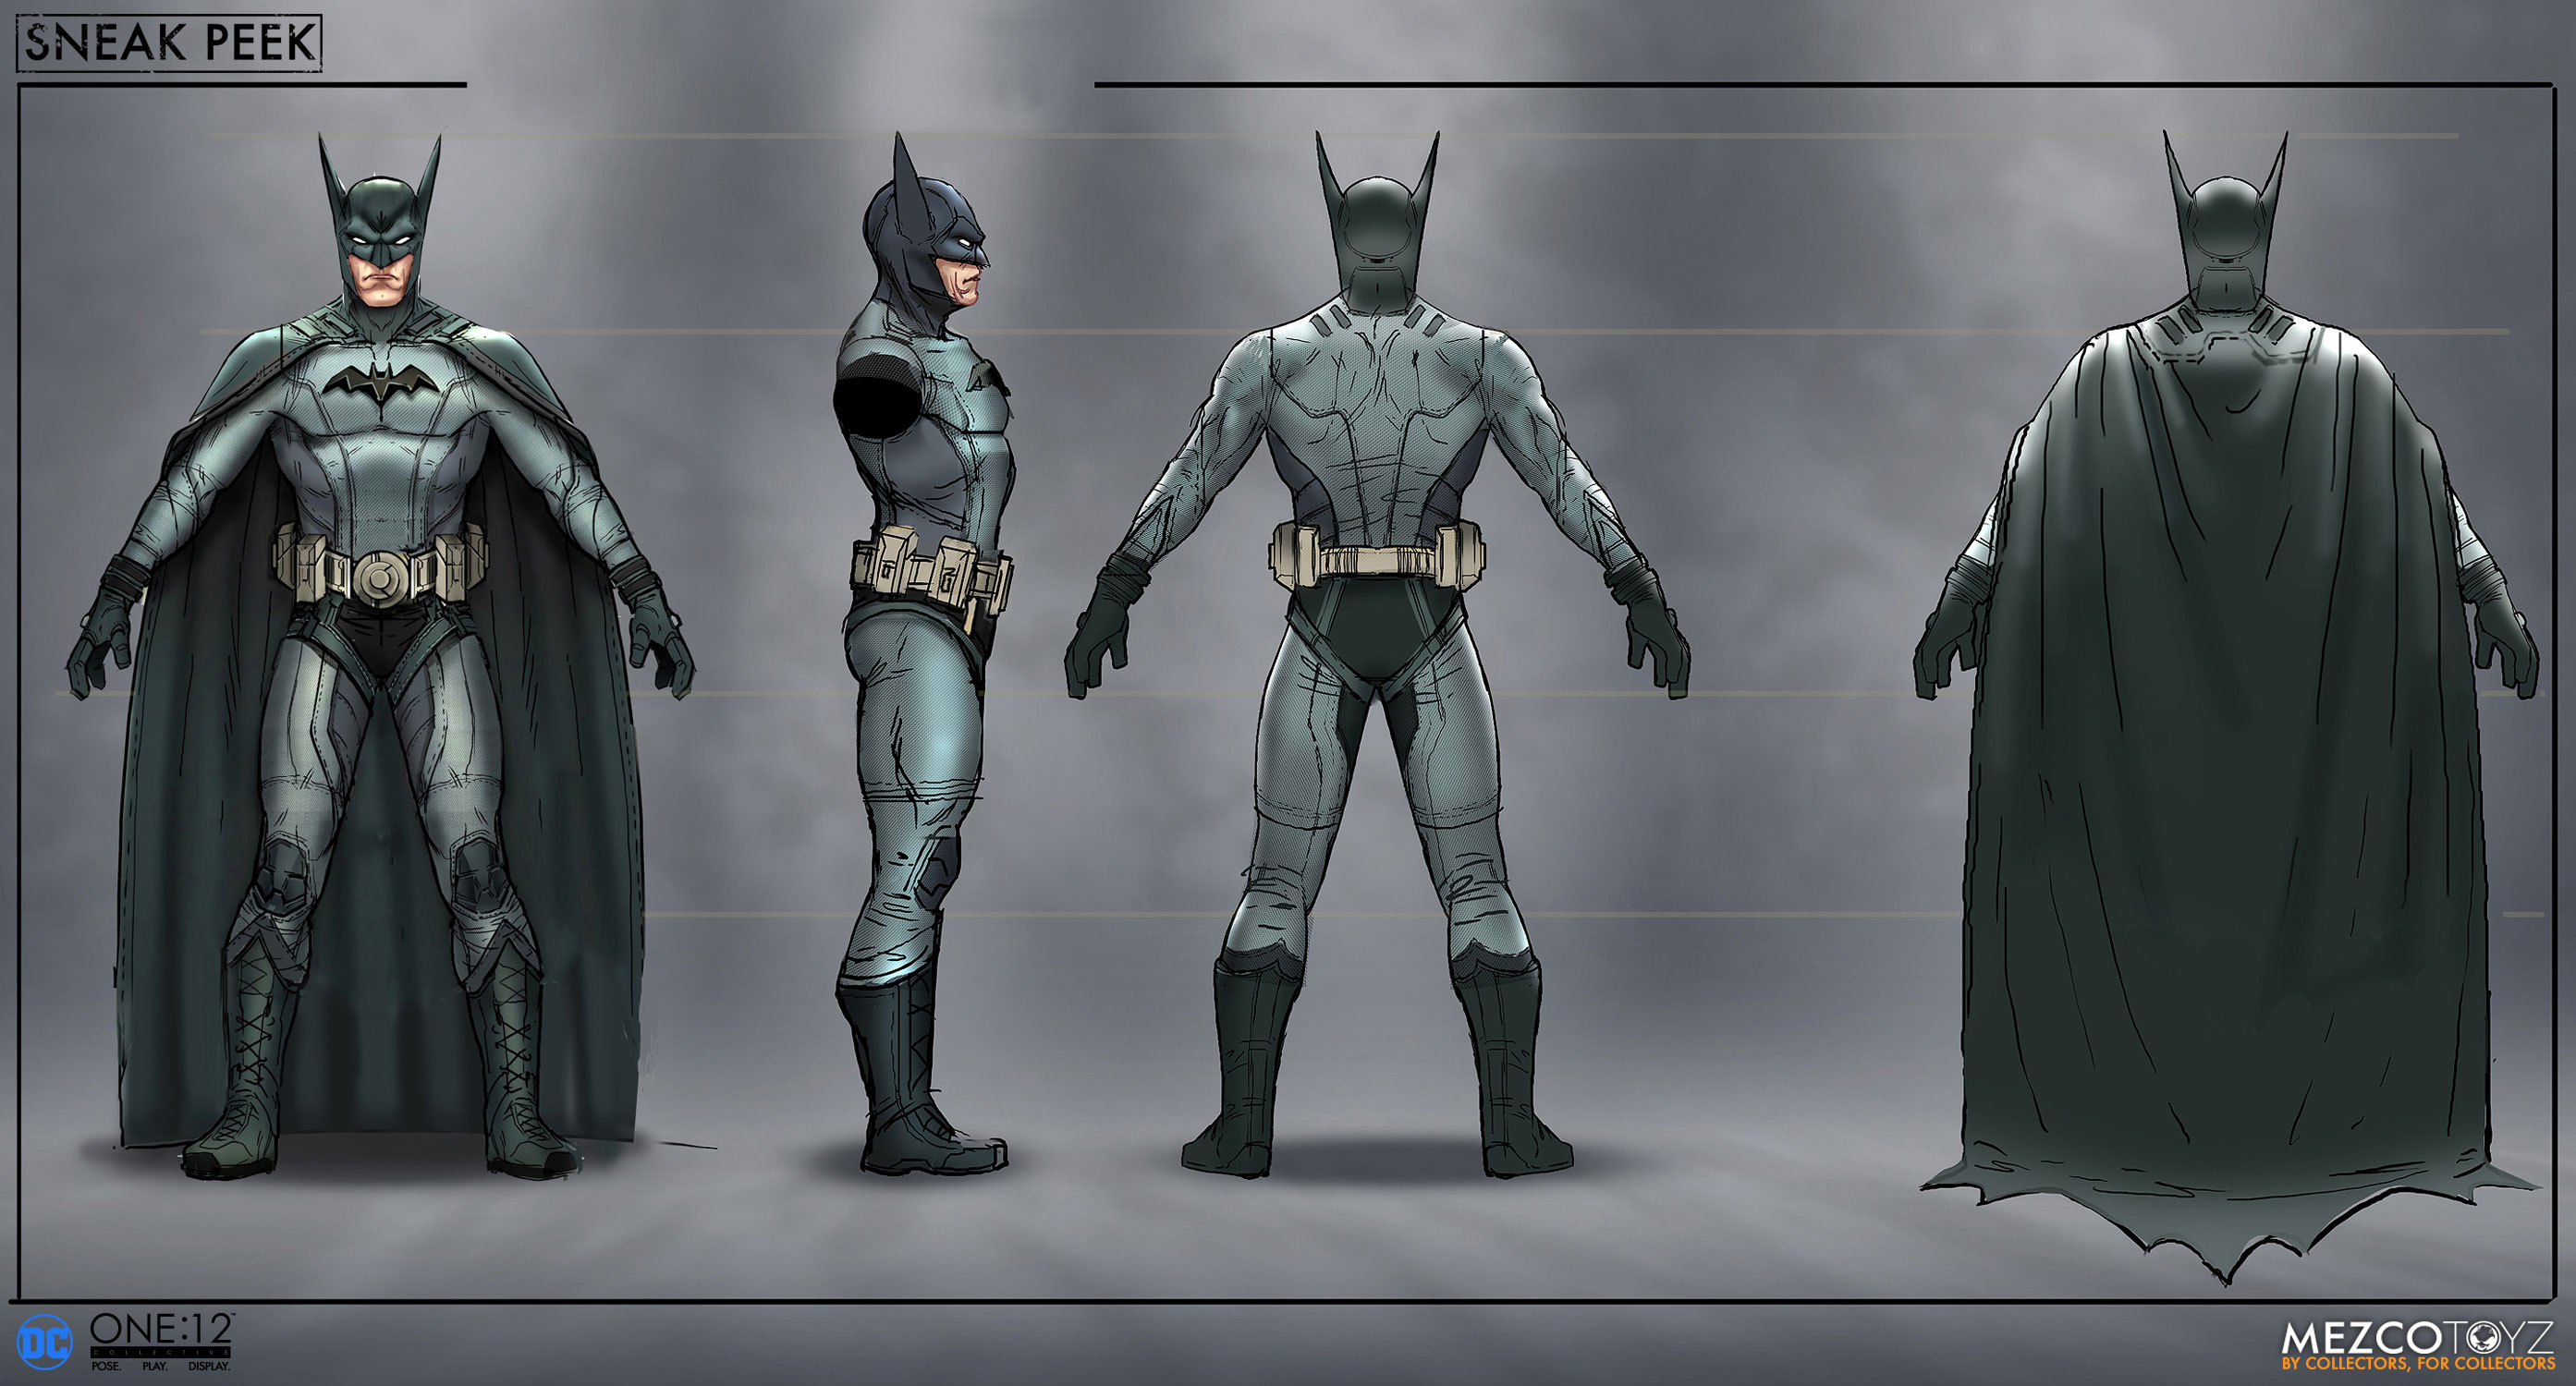 batman-ascending-knight-action-figure-mezco-toys-black-version-2